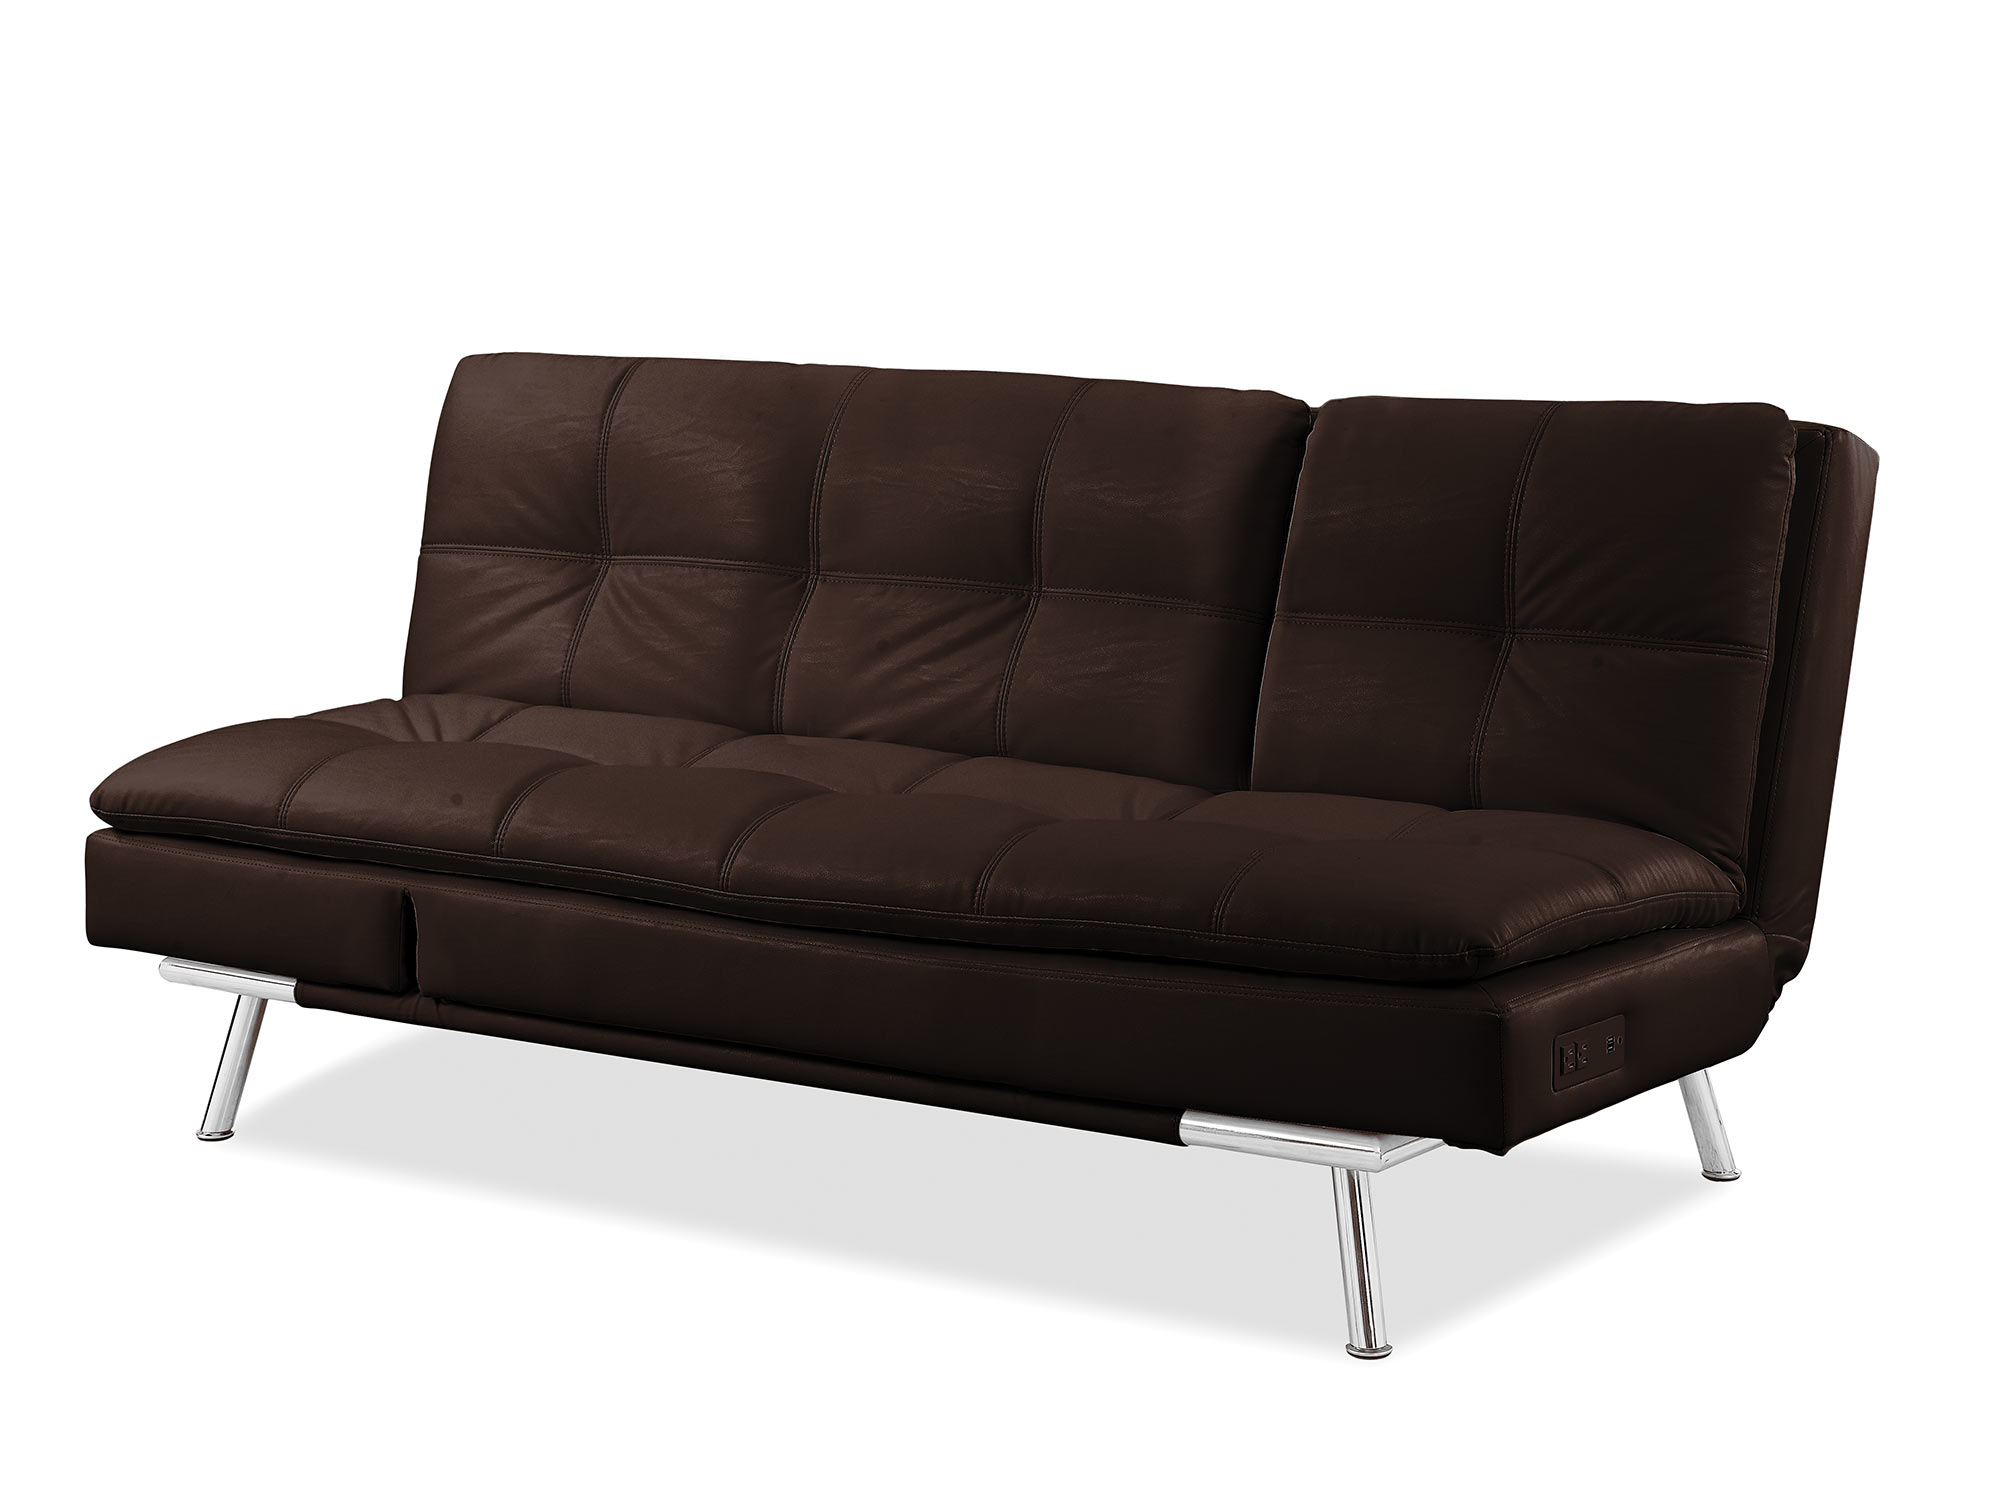 Palermo convertible sofa java by serta lifestyle for Sofas convertibles